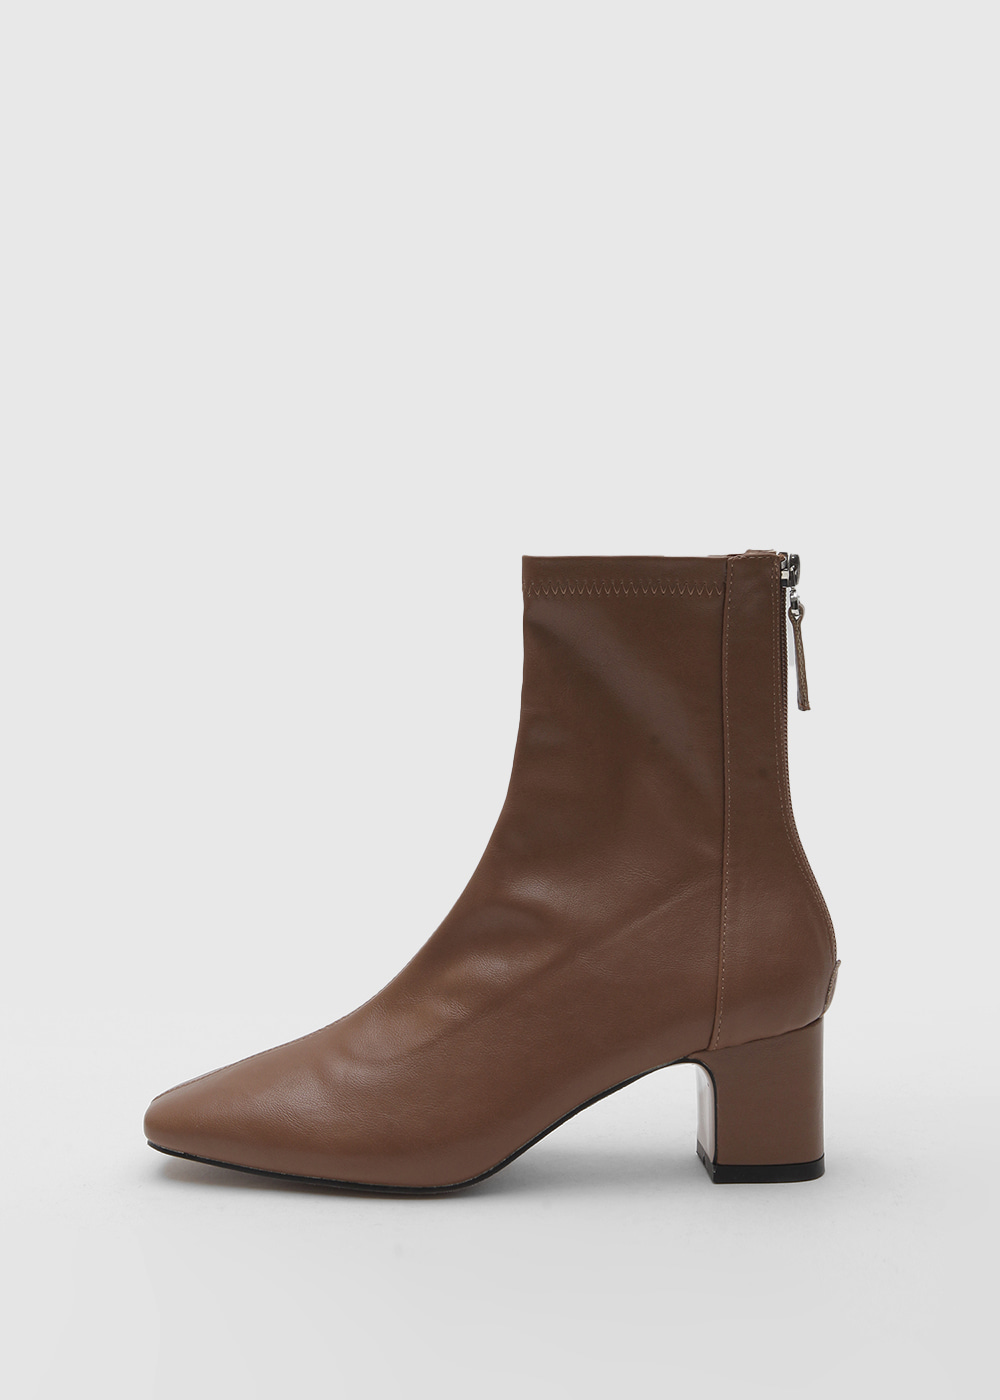 FW Daily Socks Ankle Boots